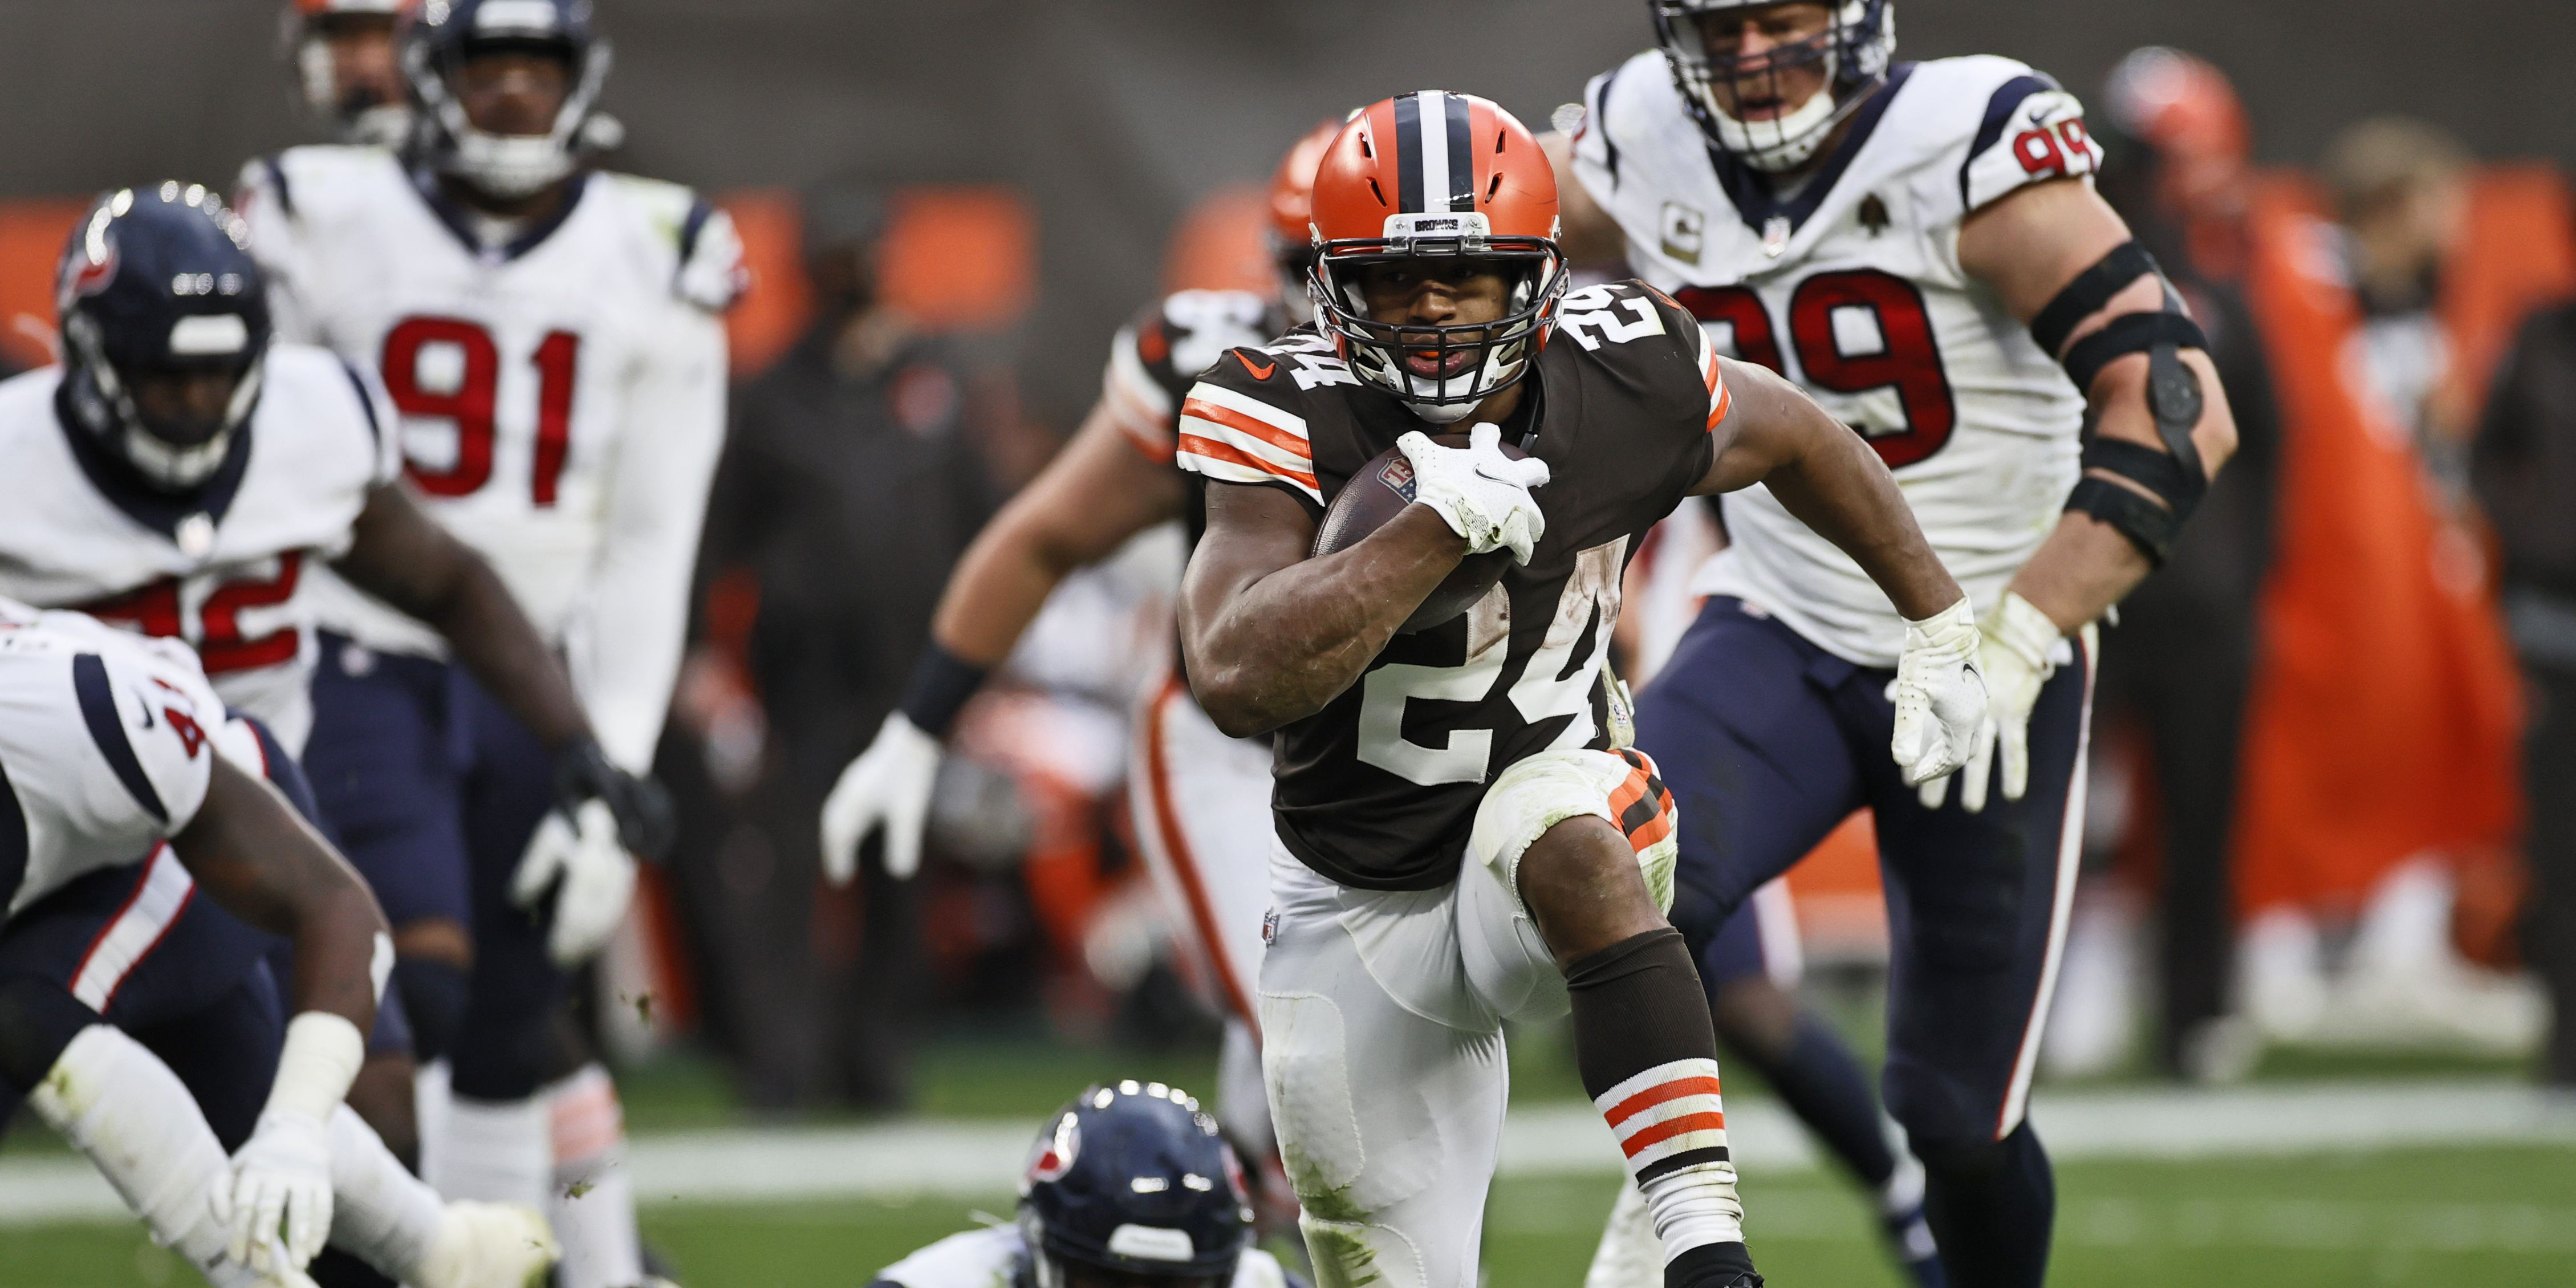 Cleveland Browns turn back Houston Texans 10-7